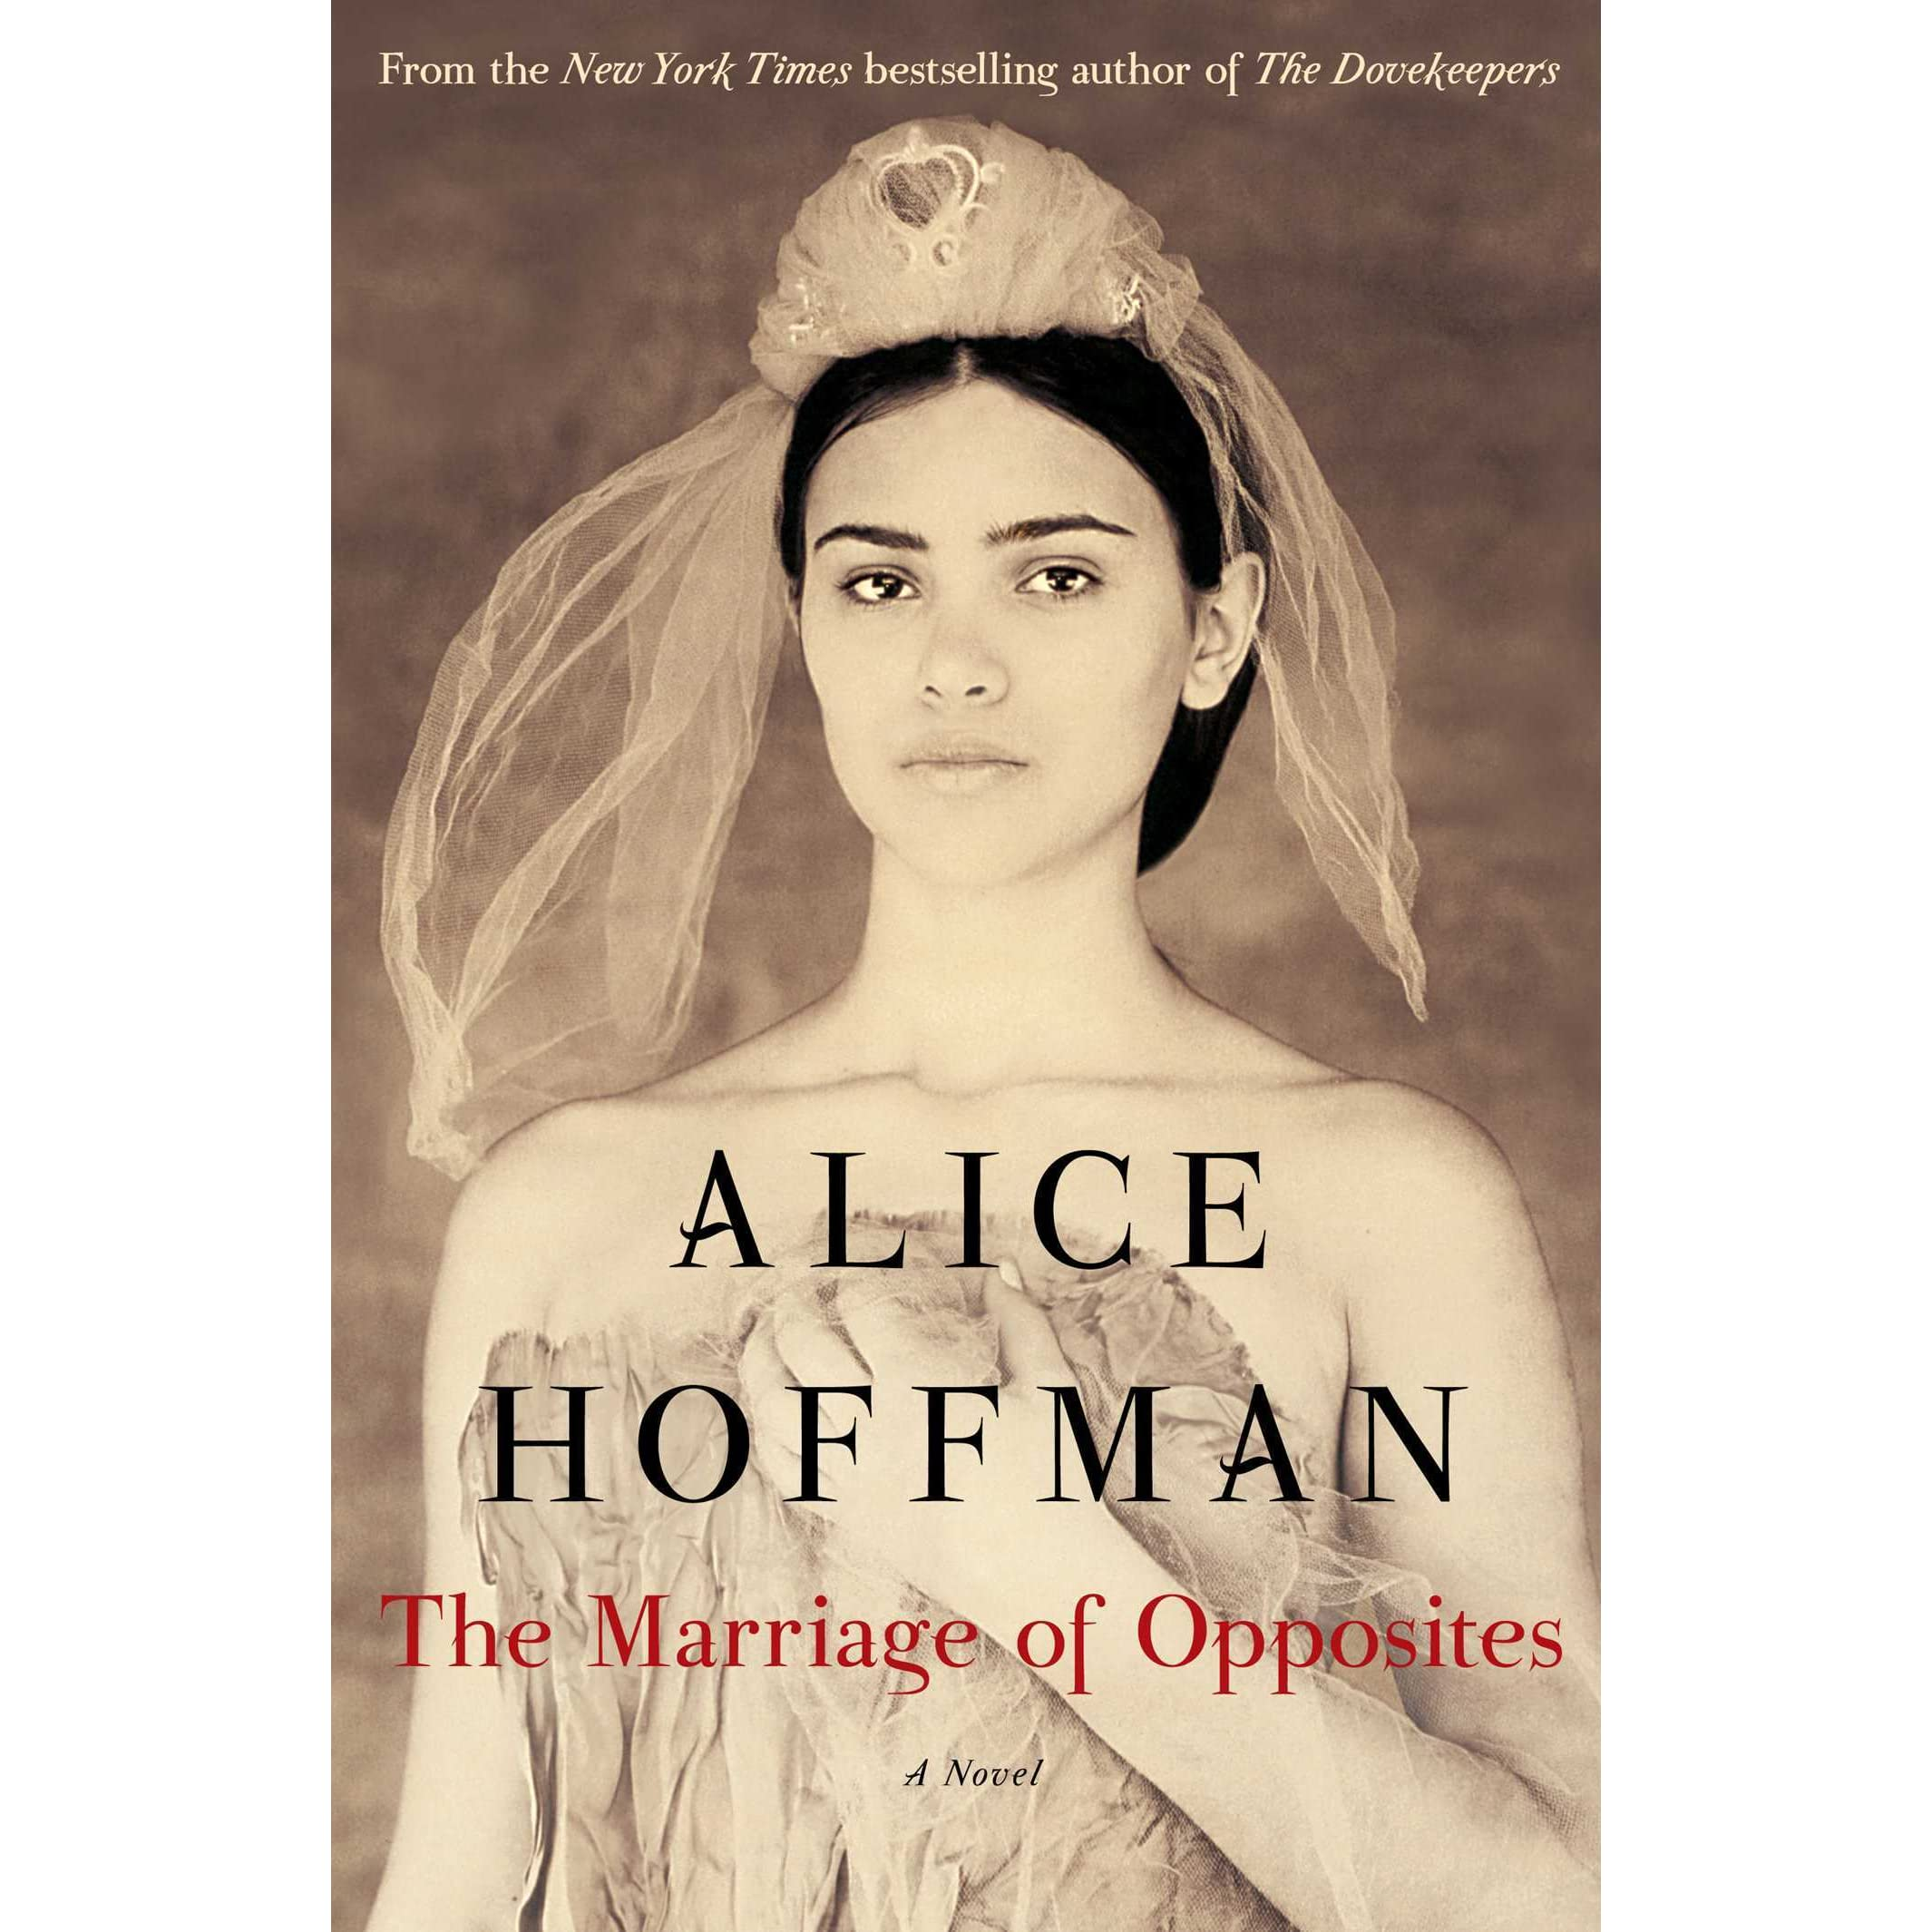 Quotes About Love And Marriage Goodreads : The Marriage of Opposites by Alice Hoffman Reviews, Discussion ...